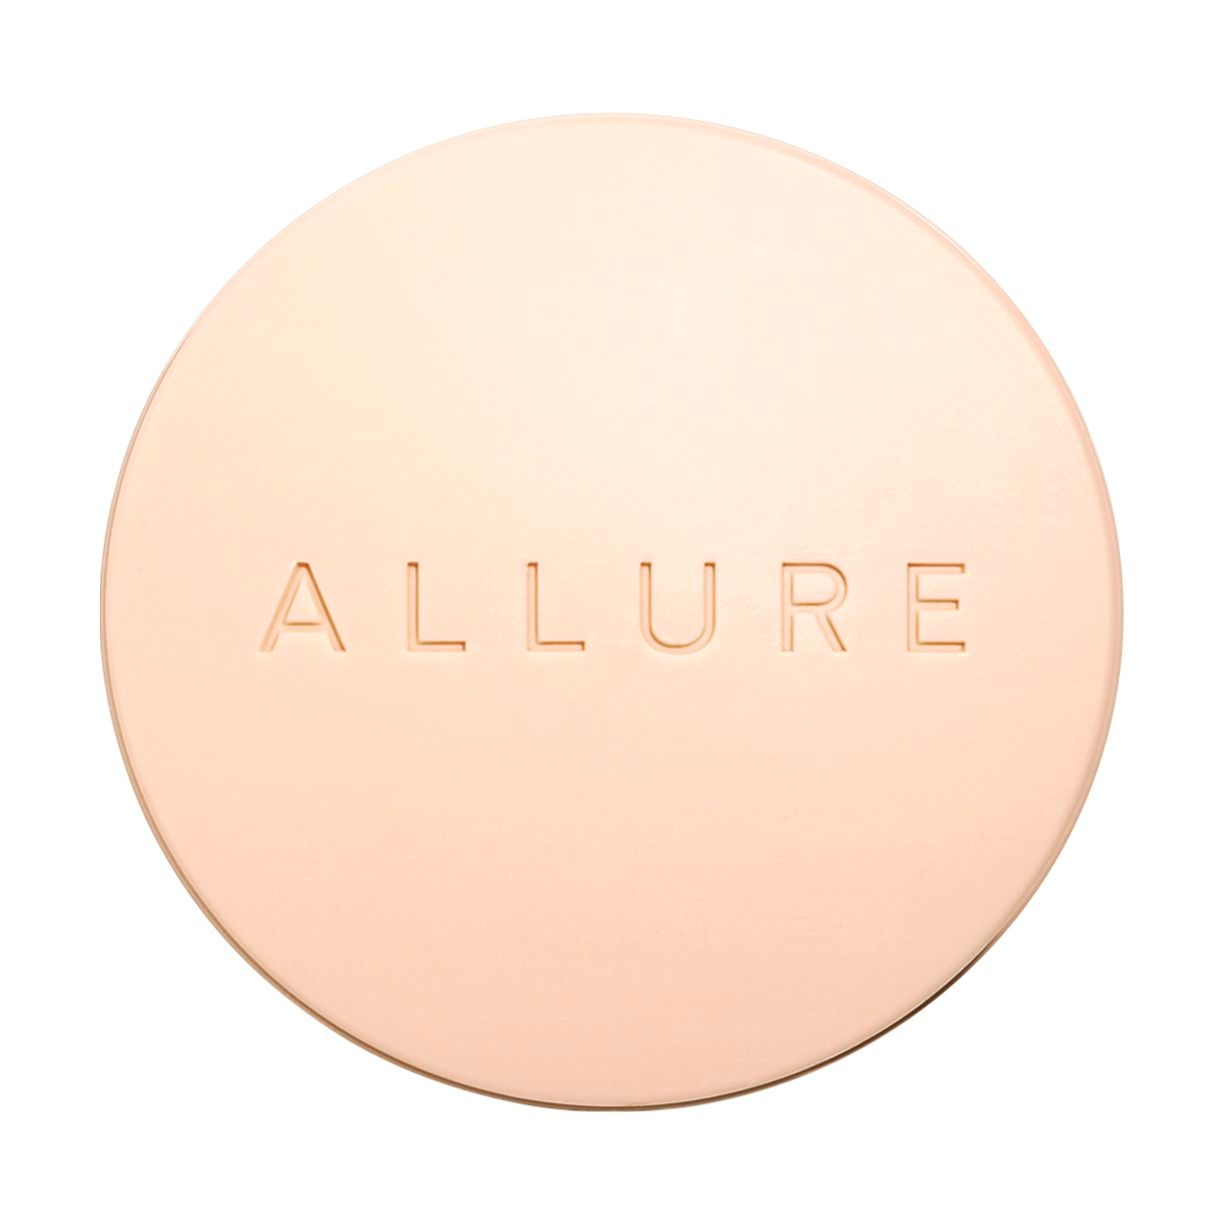 ALLURE BATH SOAP 150G